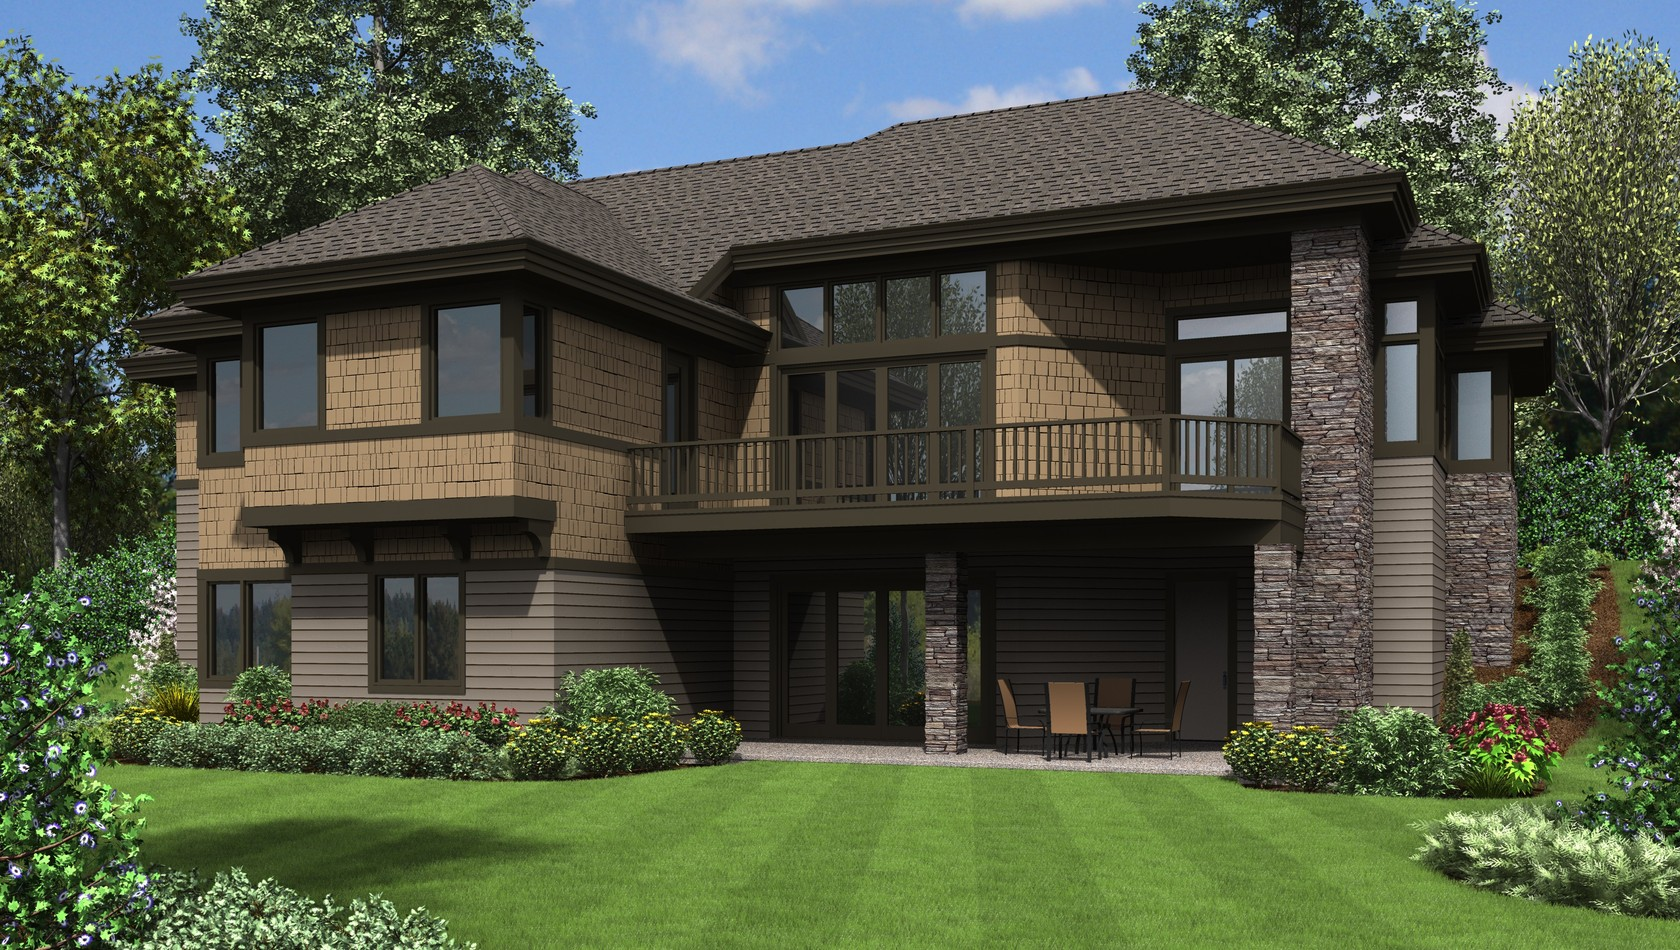 House plan 1332 the thompson for Building on a hillside plans